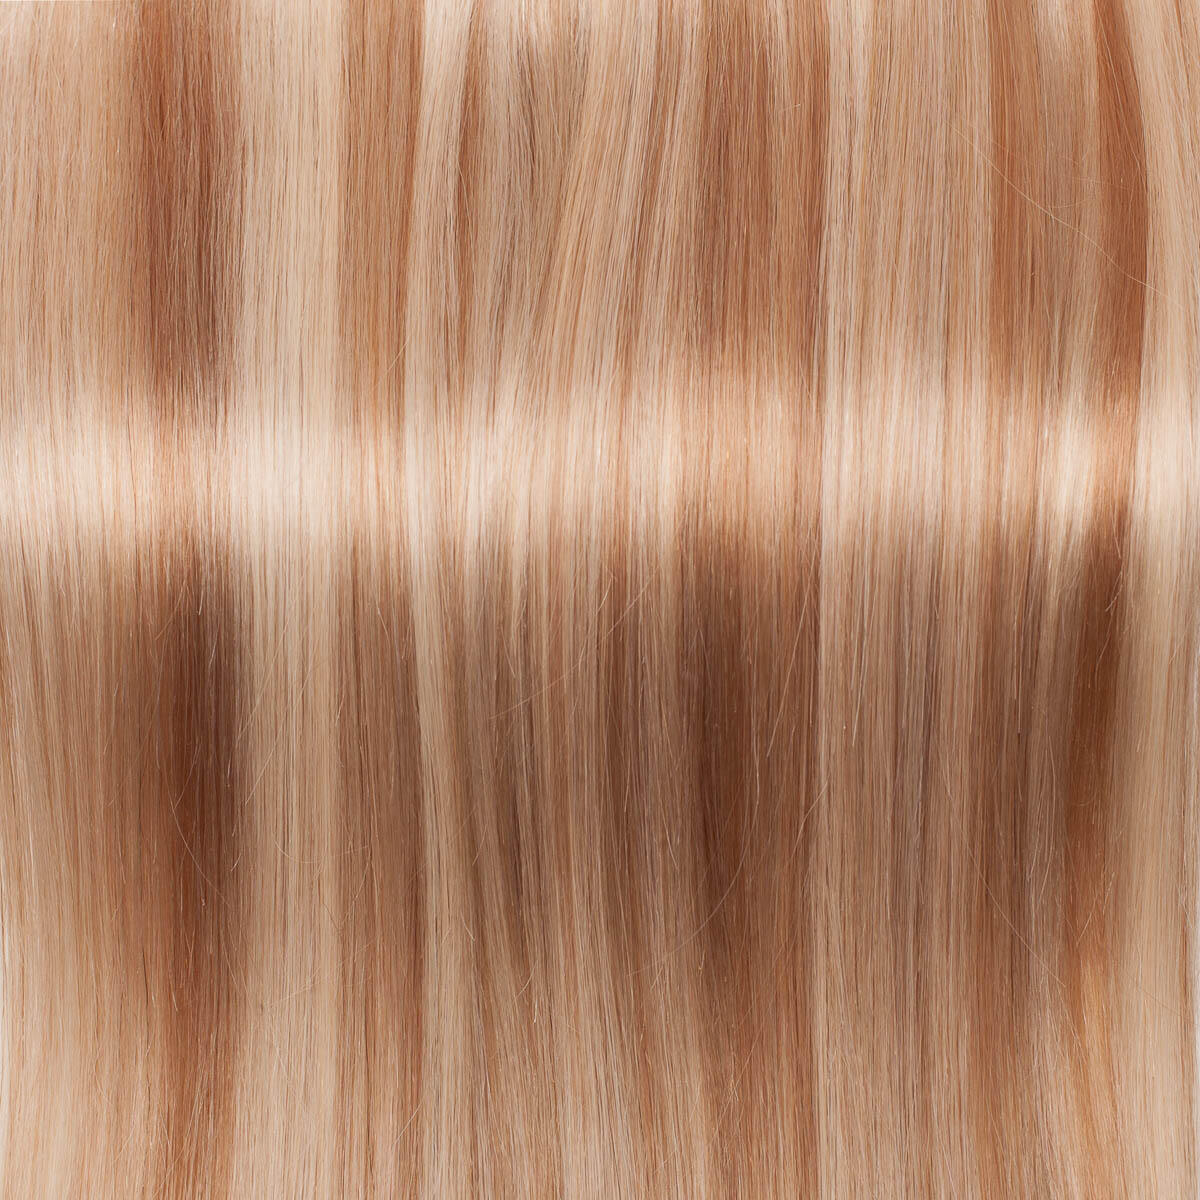 Quick & Easy M22 Chad Wood Blond Mix 50 cm